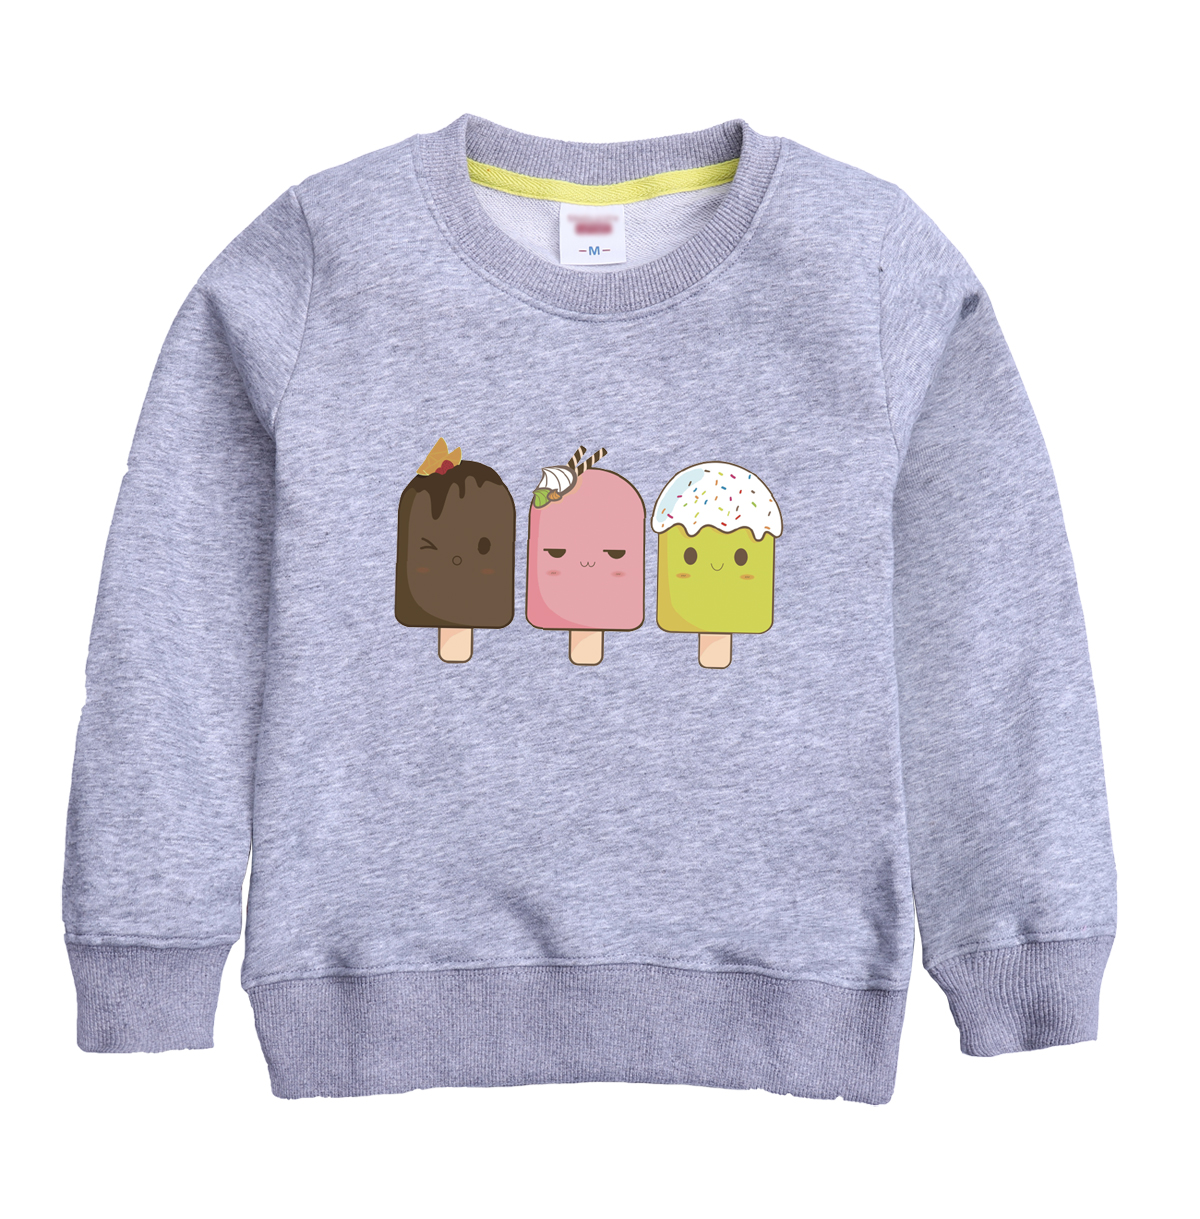 Cute ice cream cartoon pattern 2018new fashion winter sweatshirt design for children keeping warm of casual clothing for winter